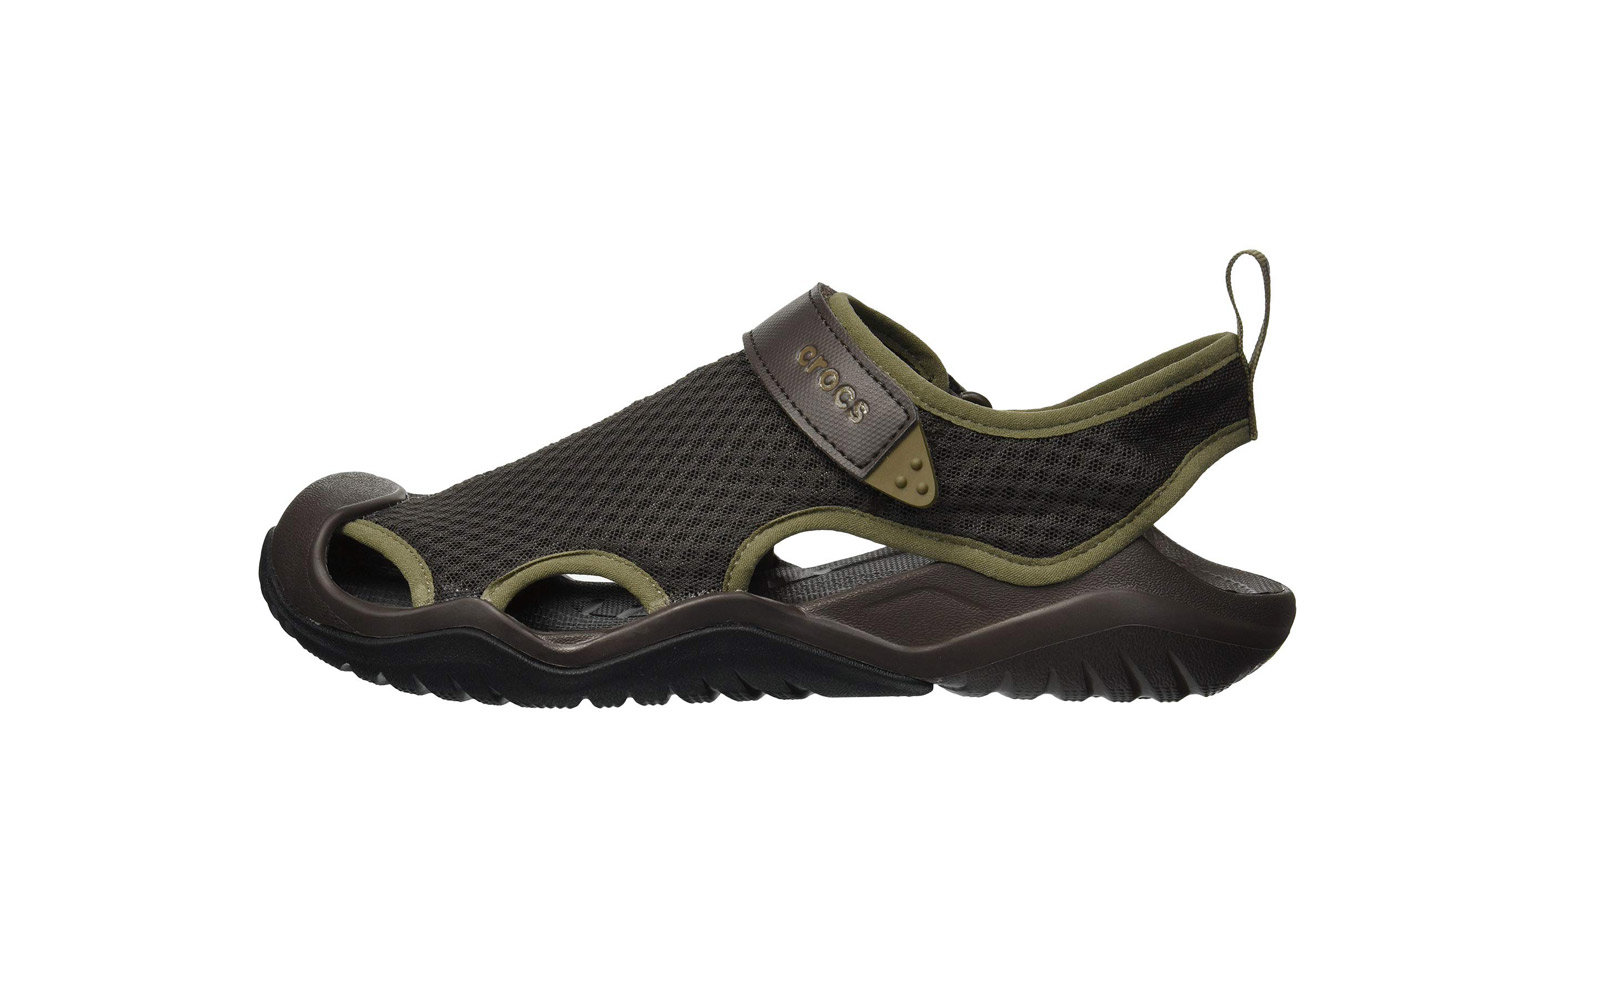 66ed4503c7b5 The Best Men s Sandals to Pack for Your Next Vacation